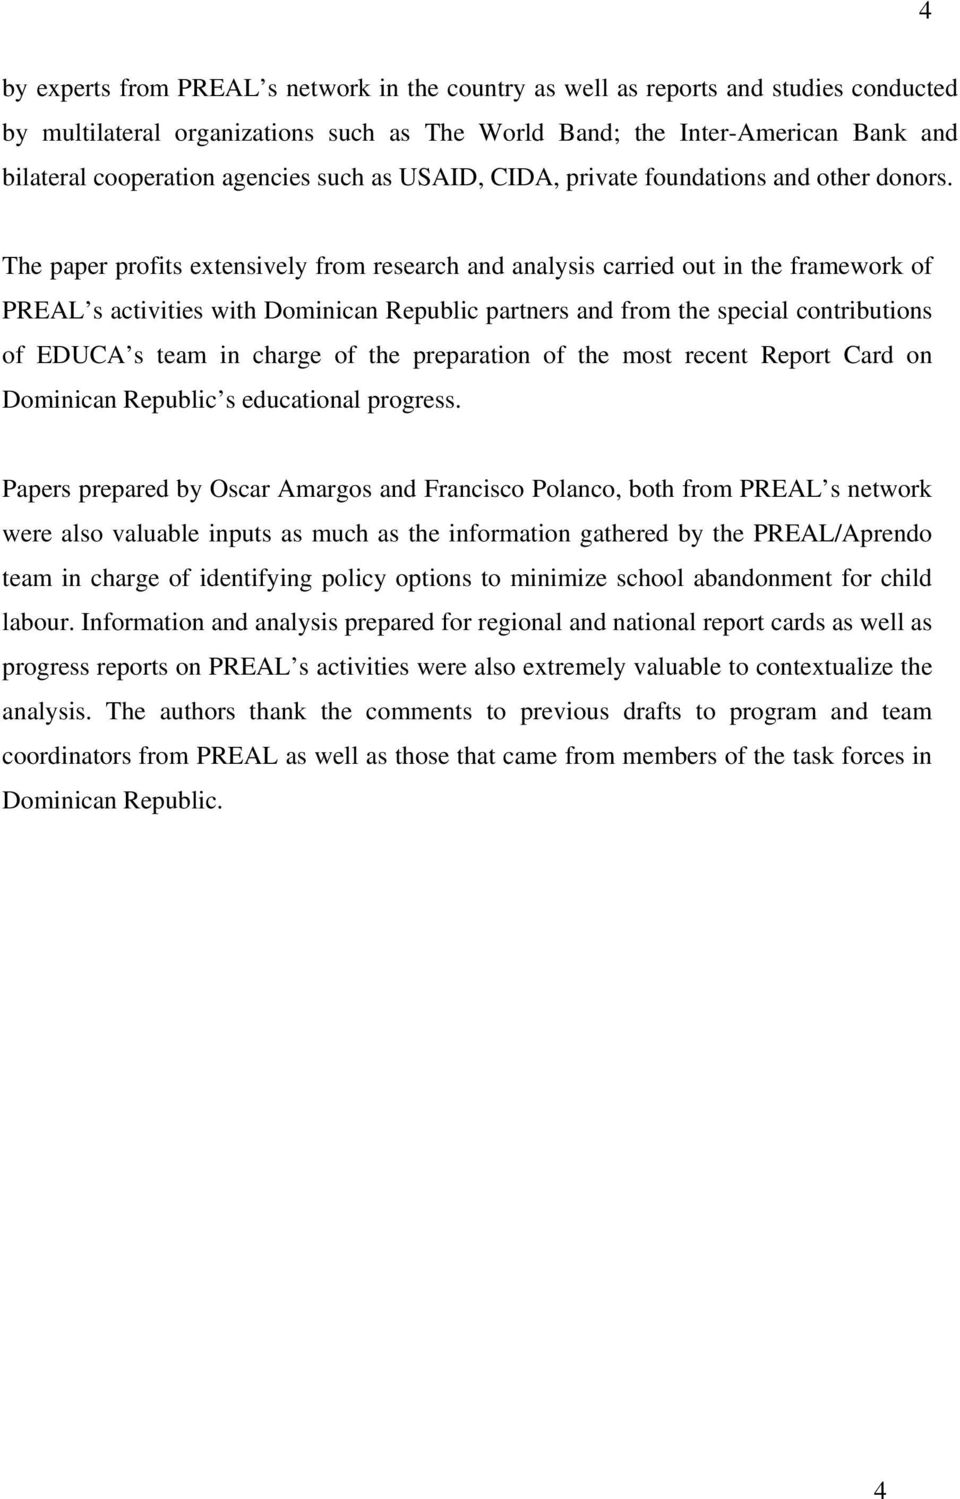 The paper profits extensively from research and analysis carried out in the framework of PREAL s activities with Dominican Republic partners and from the special contributions of EDUCA s team in